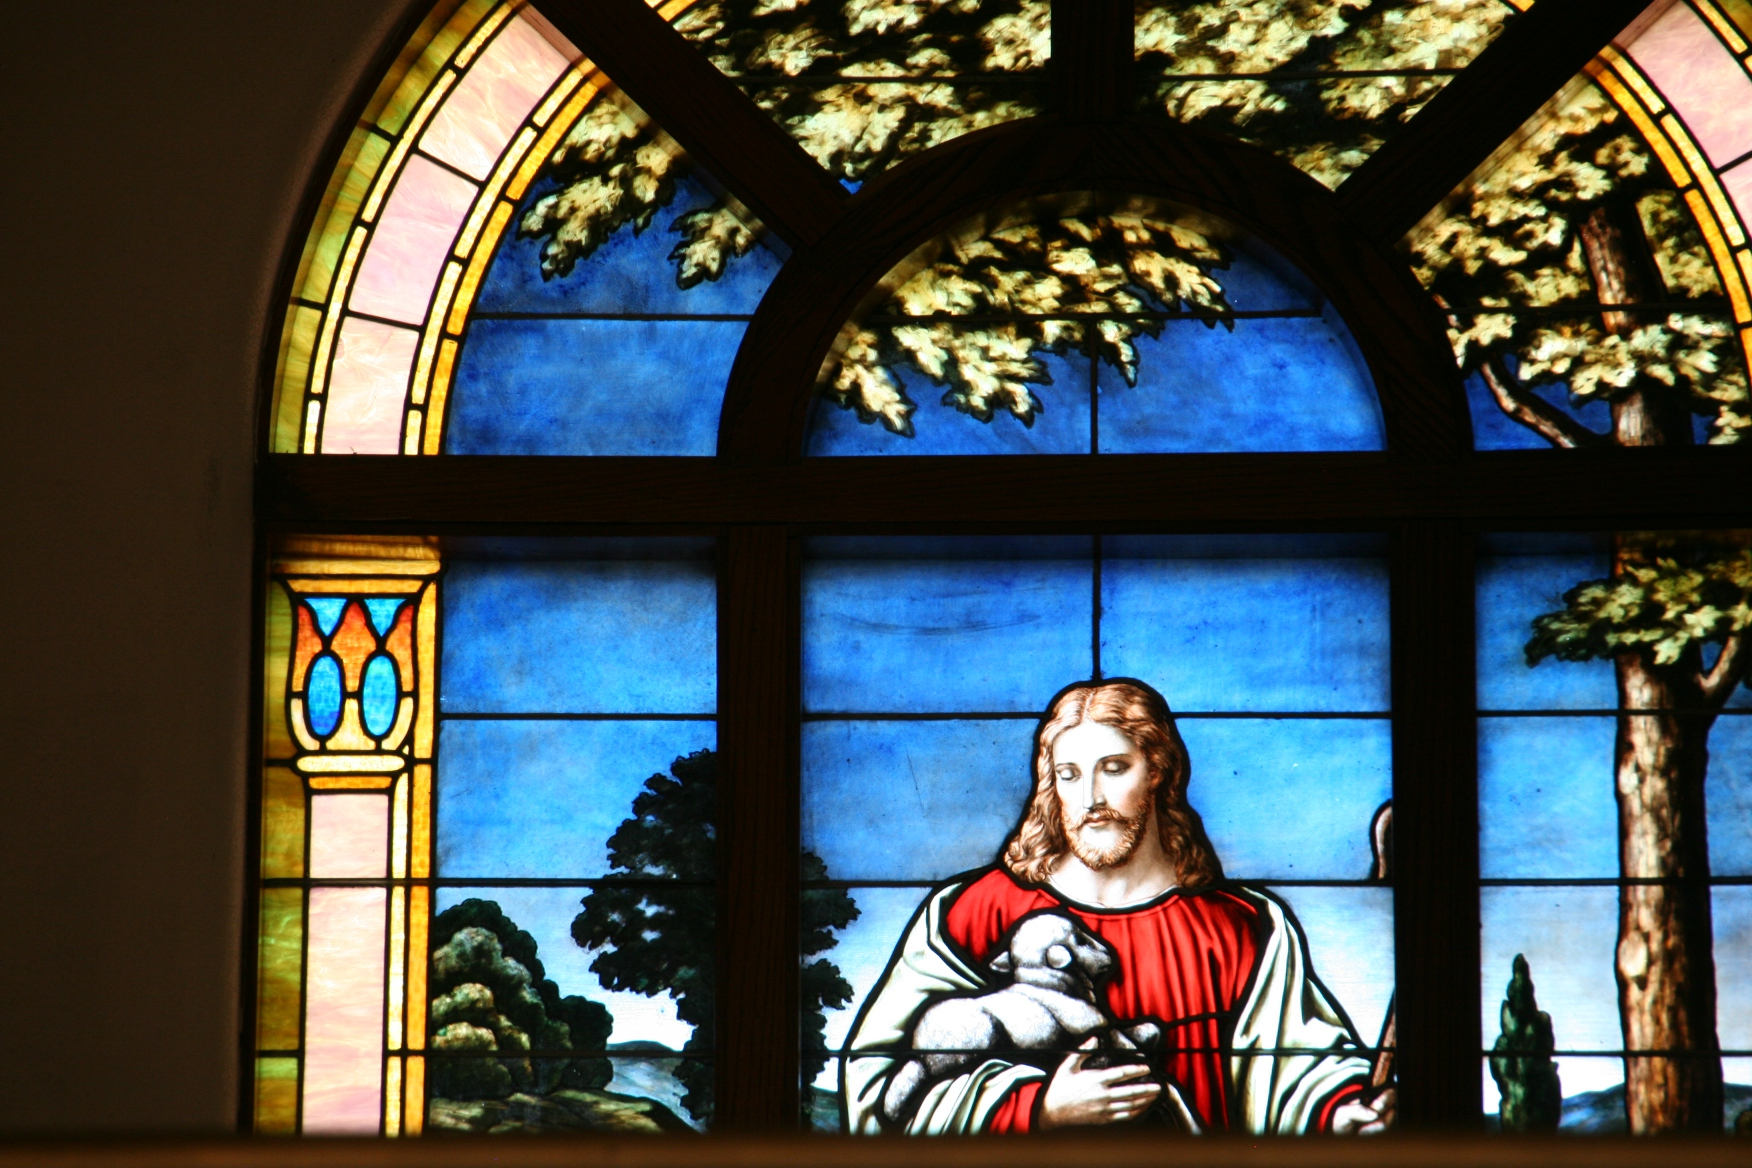 A Snippet Of The Stained Glass Window In Balcony